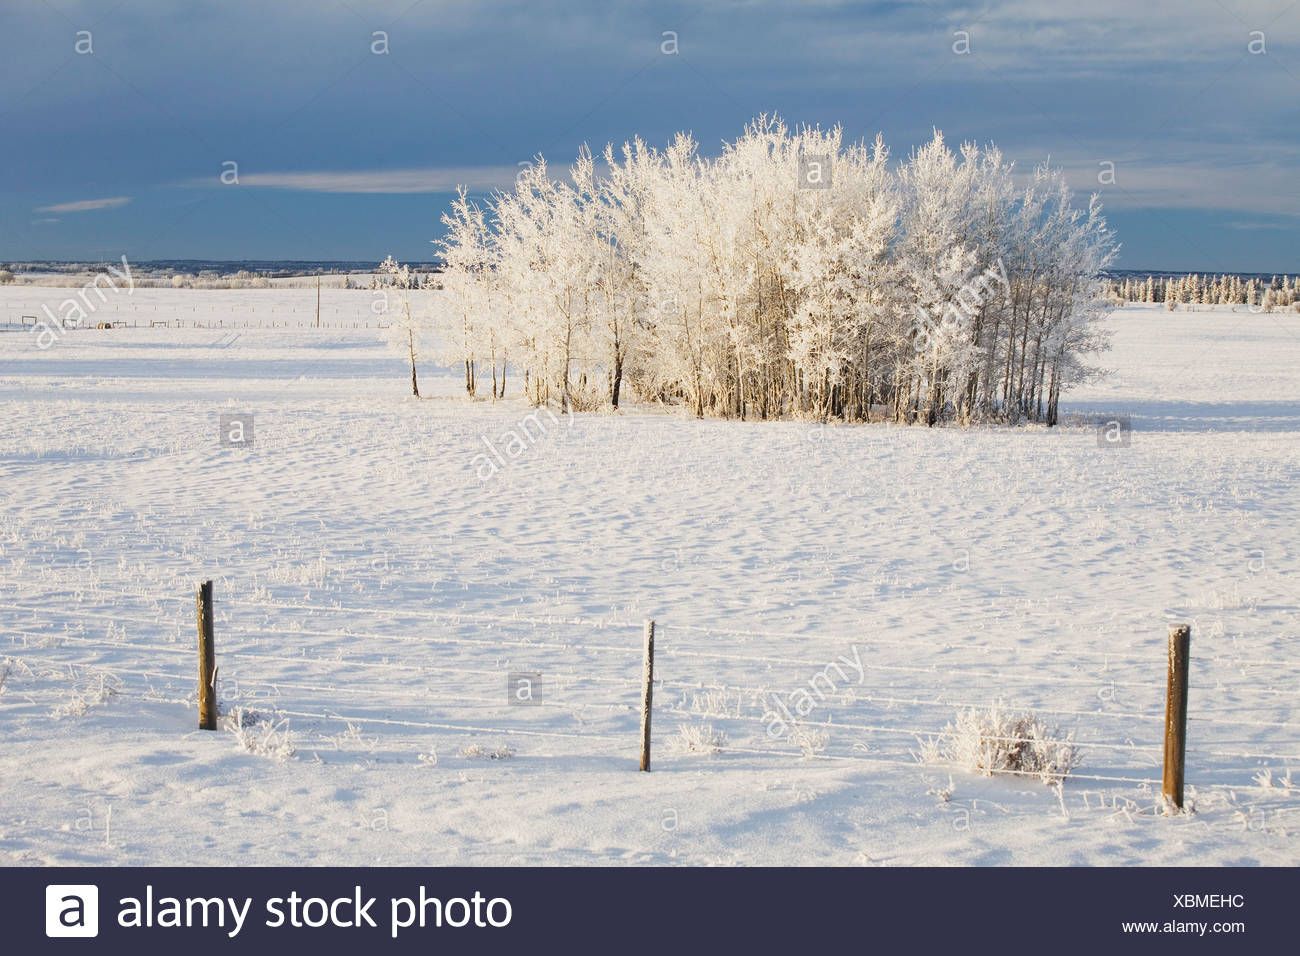 Barb Wire Fence White Stock Photos & Barb Wire Fence White Stock ...